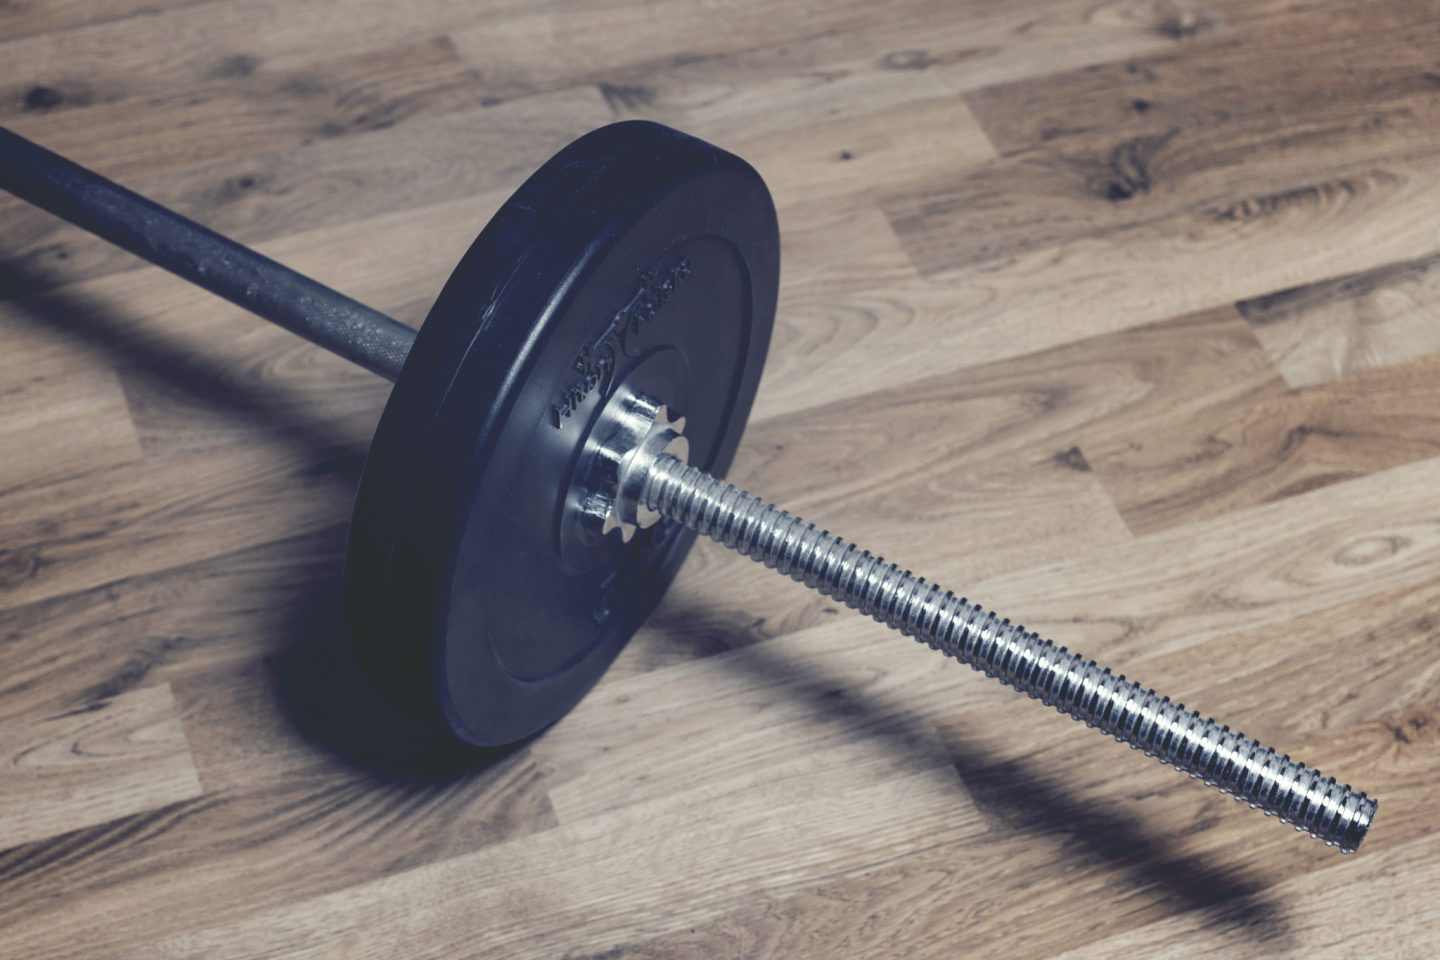 10 Lies I Used to Tell Myself About Working Out